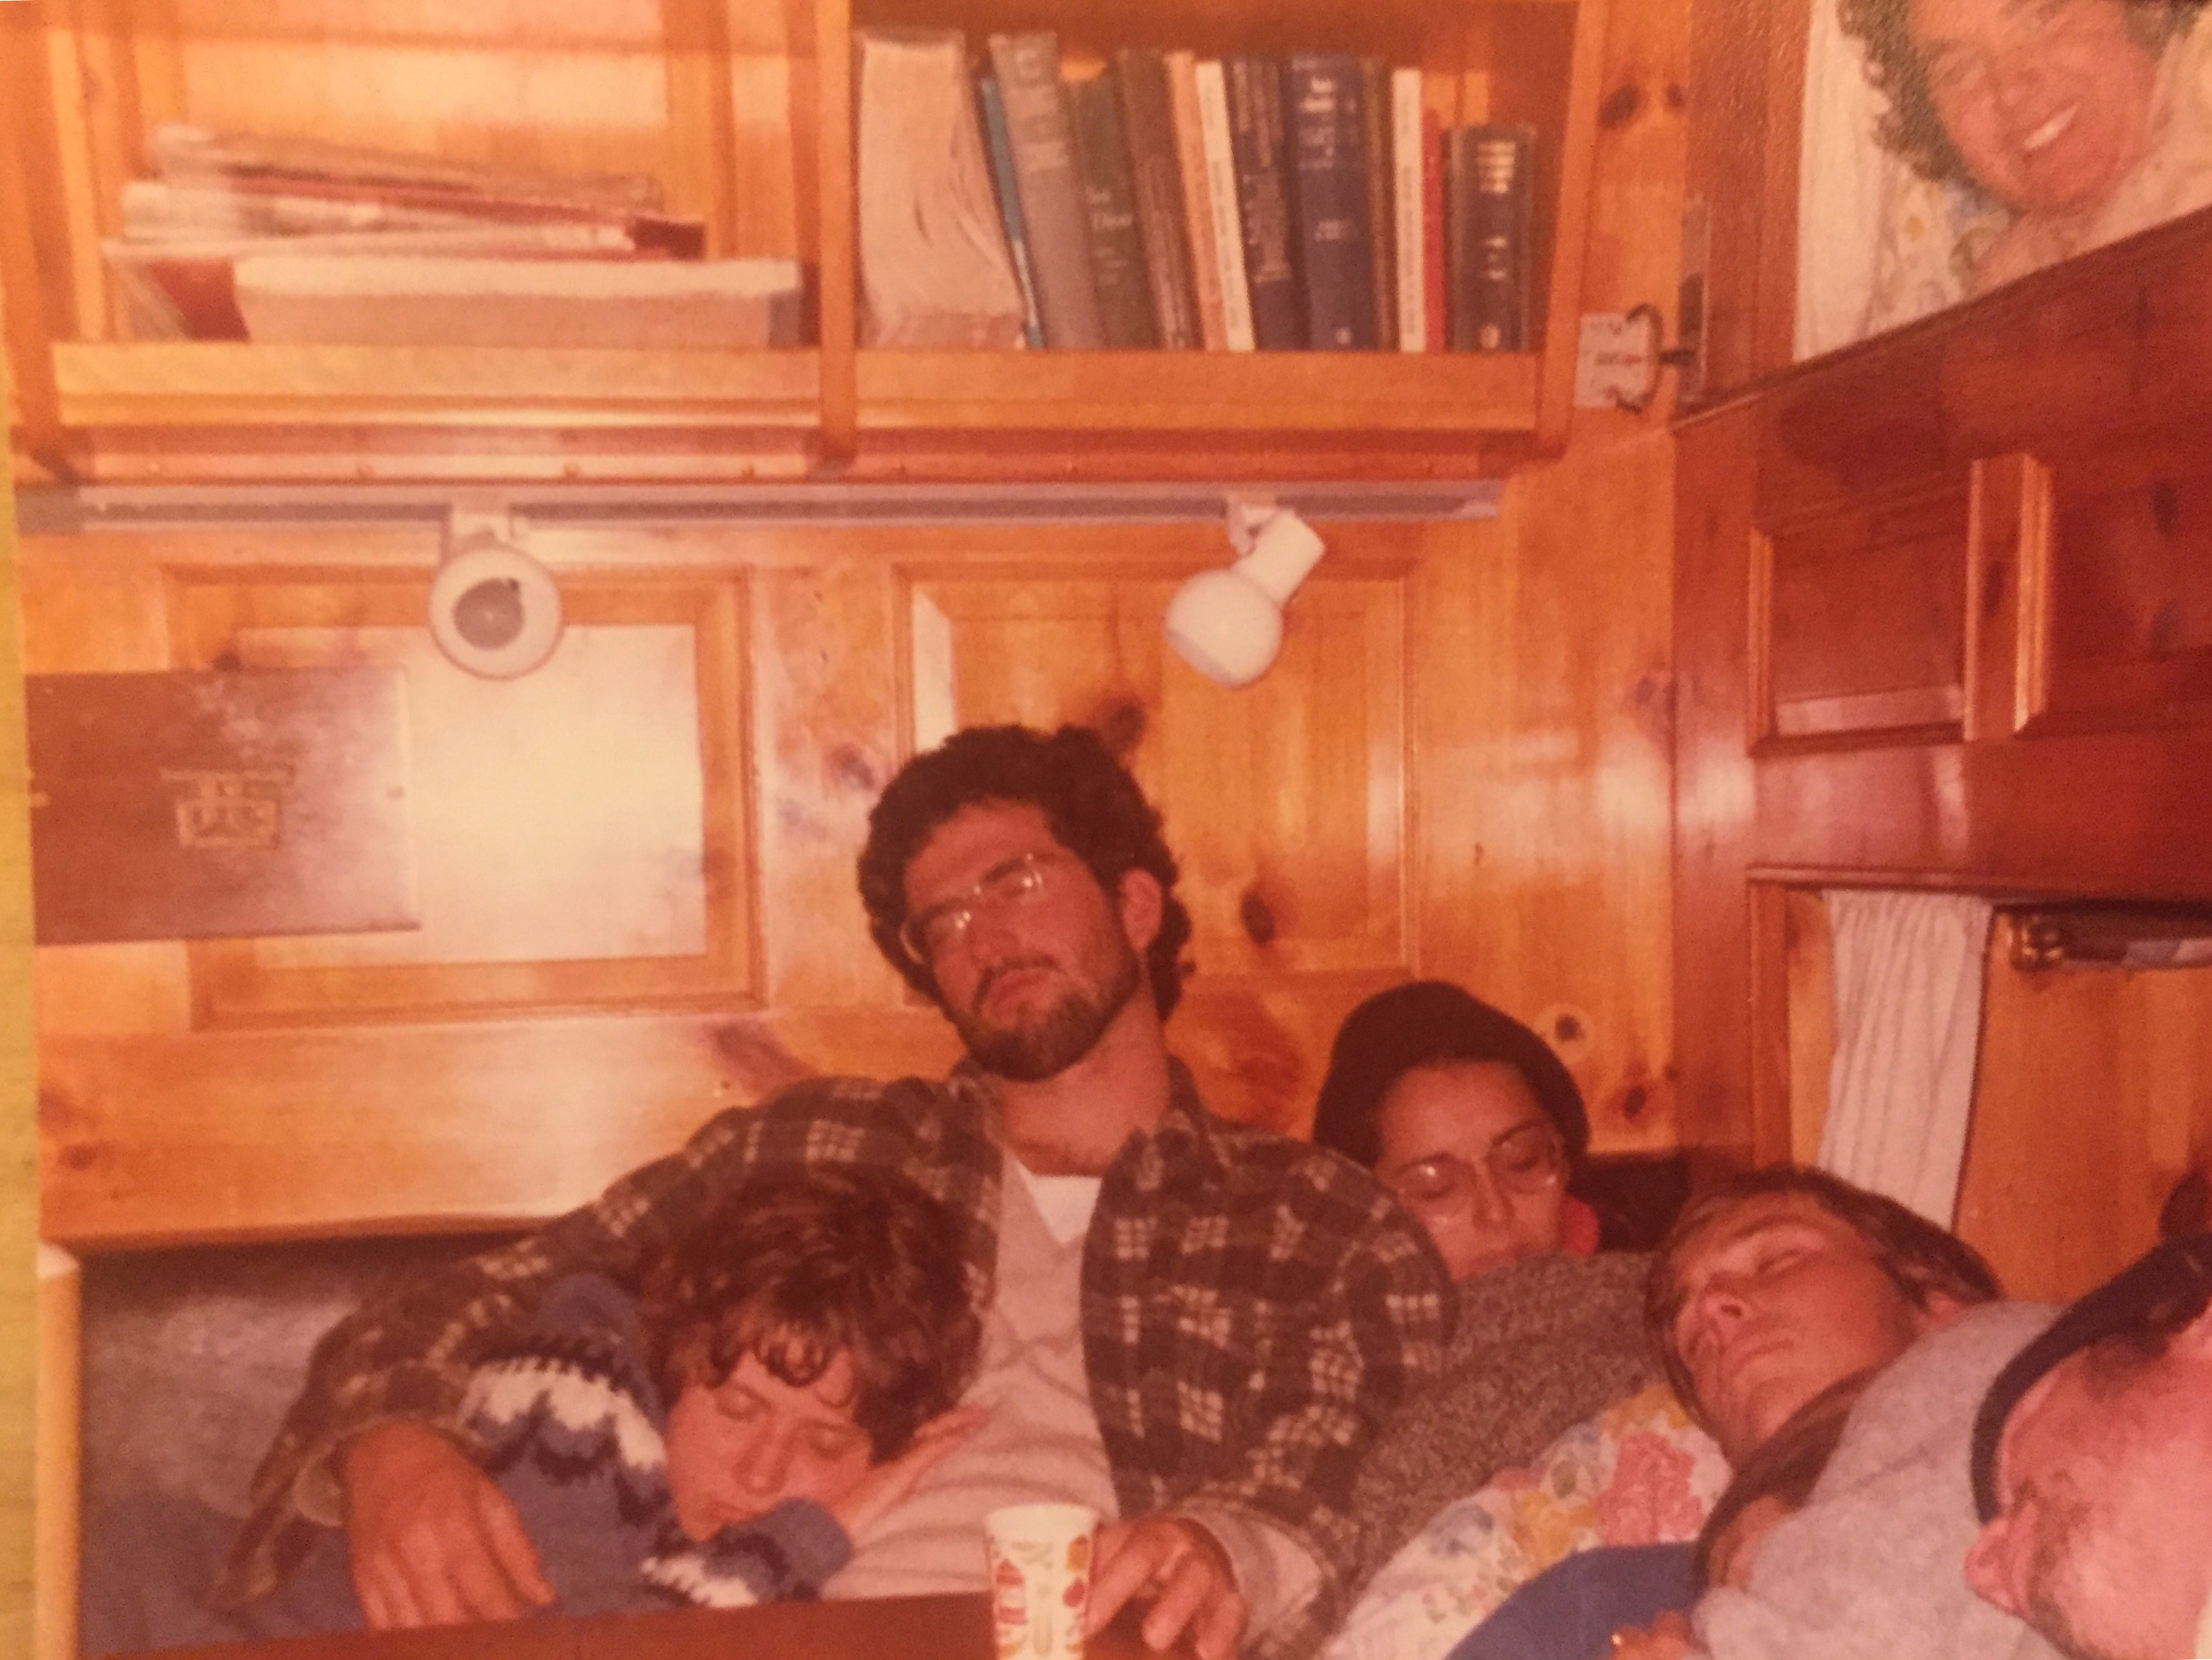 Image shows three college students slumped side by side, napping in a cozy, wood-paneled nook belowdecks, with two bunks just visible in a wall to the right